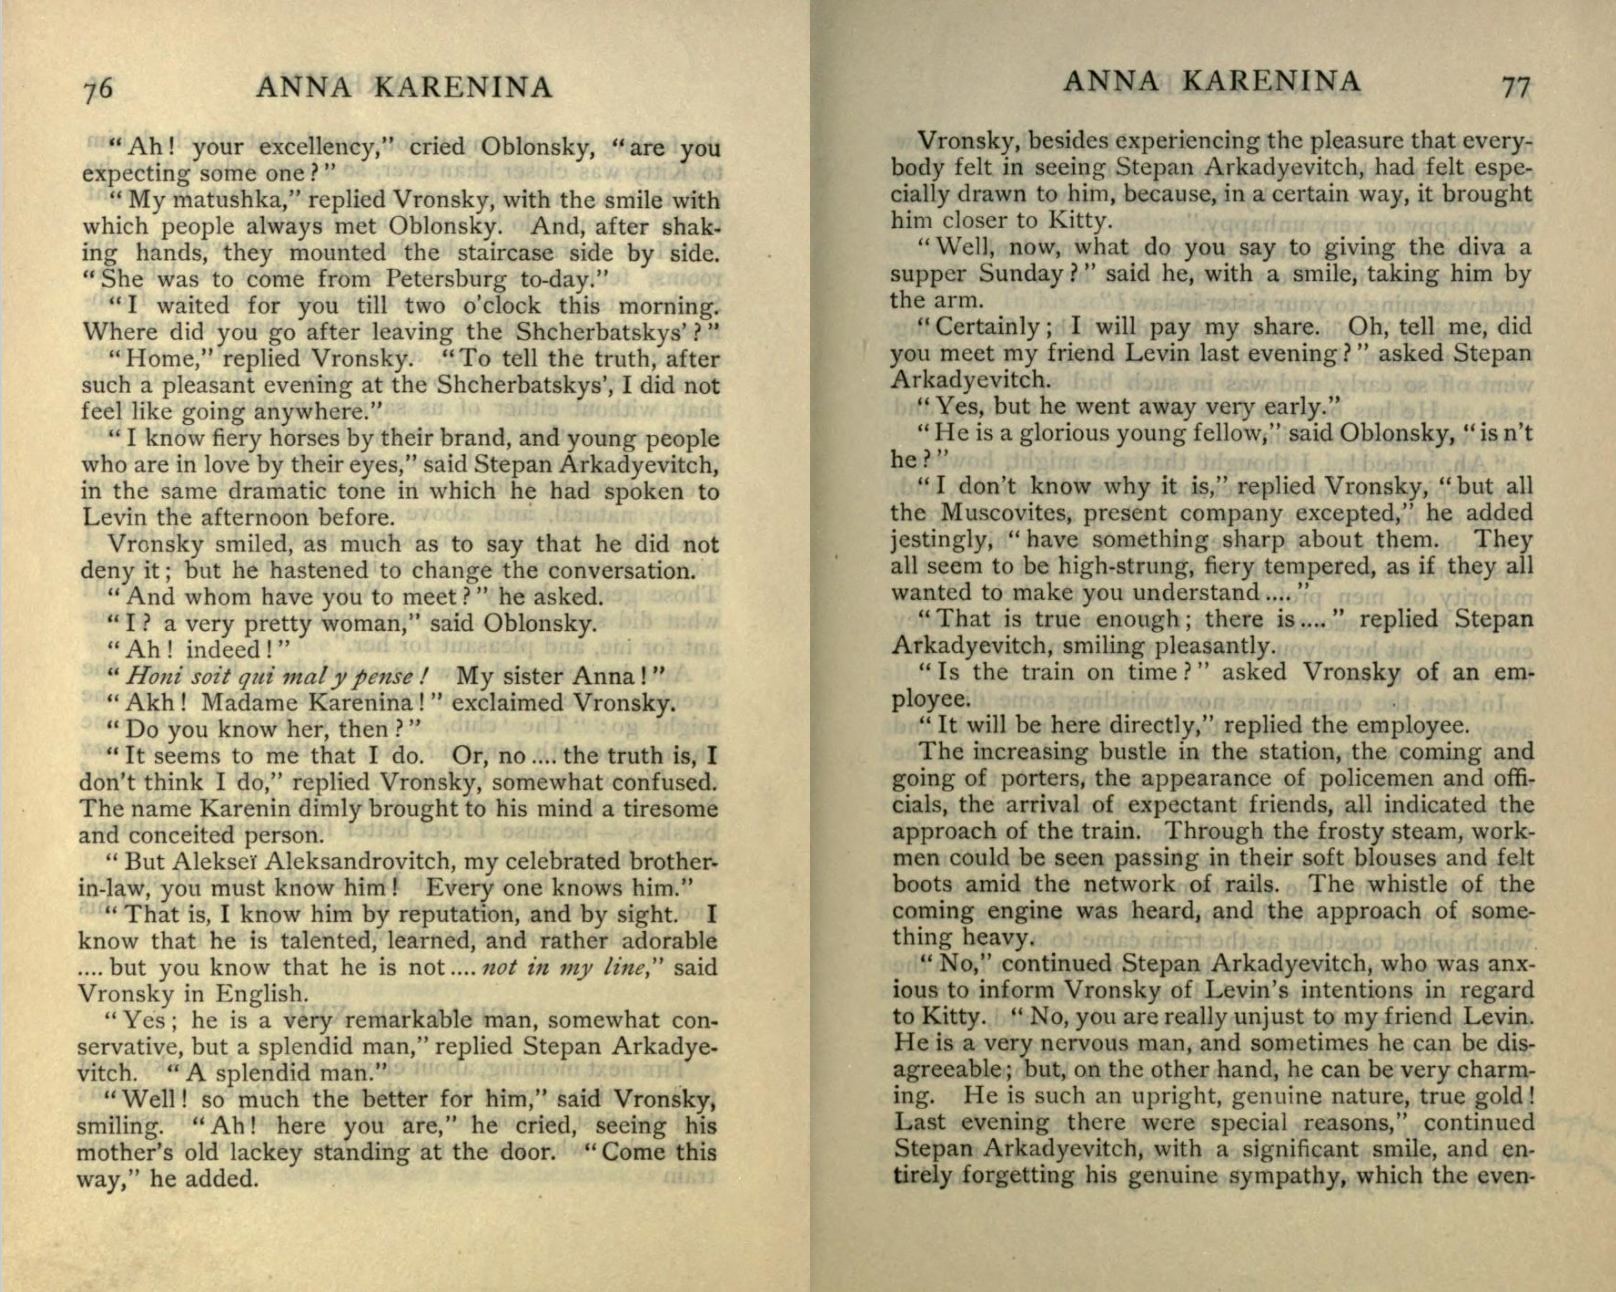 A scanned image of two open pages of Leo Tolstoy's Anna Karenina from Internet Archive